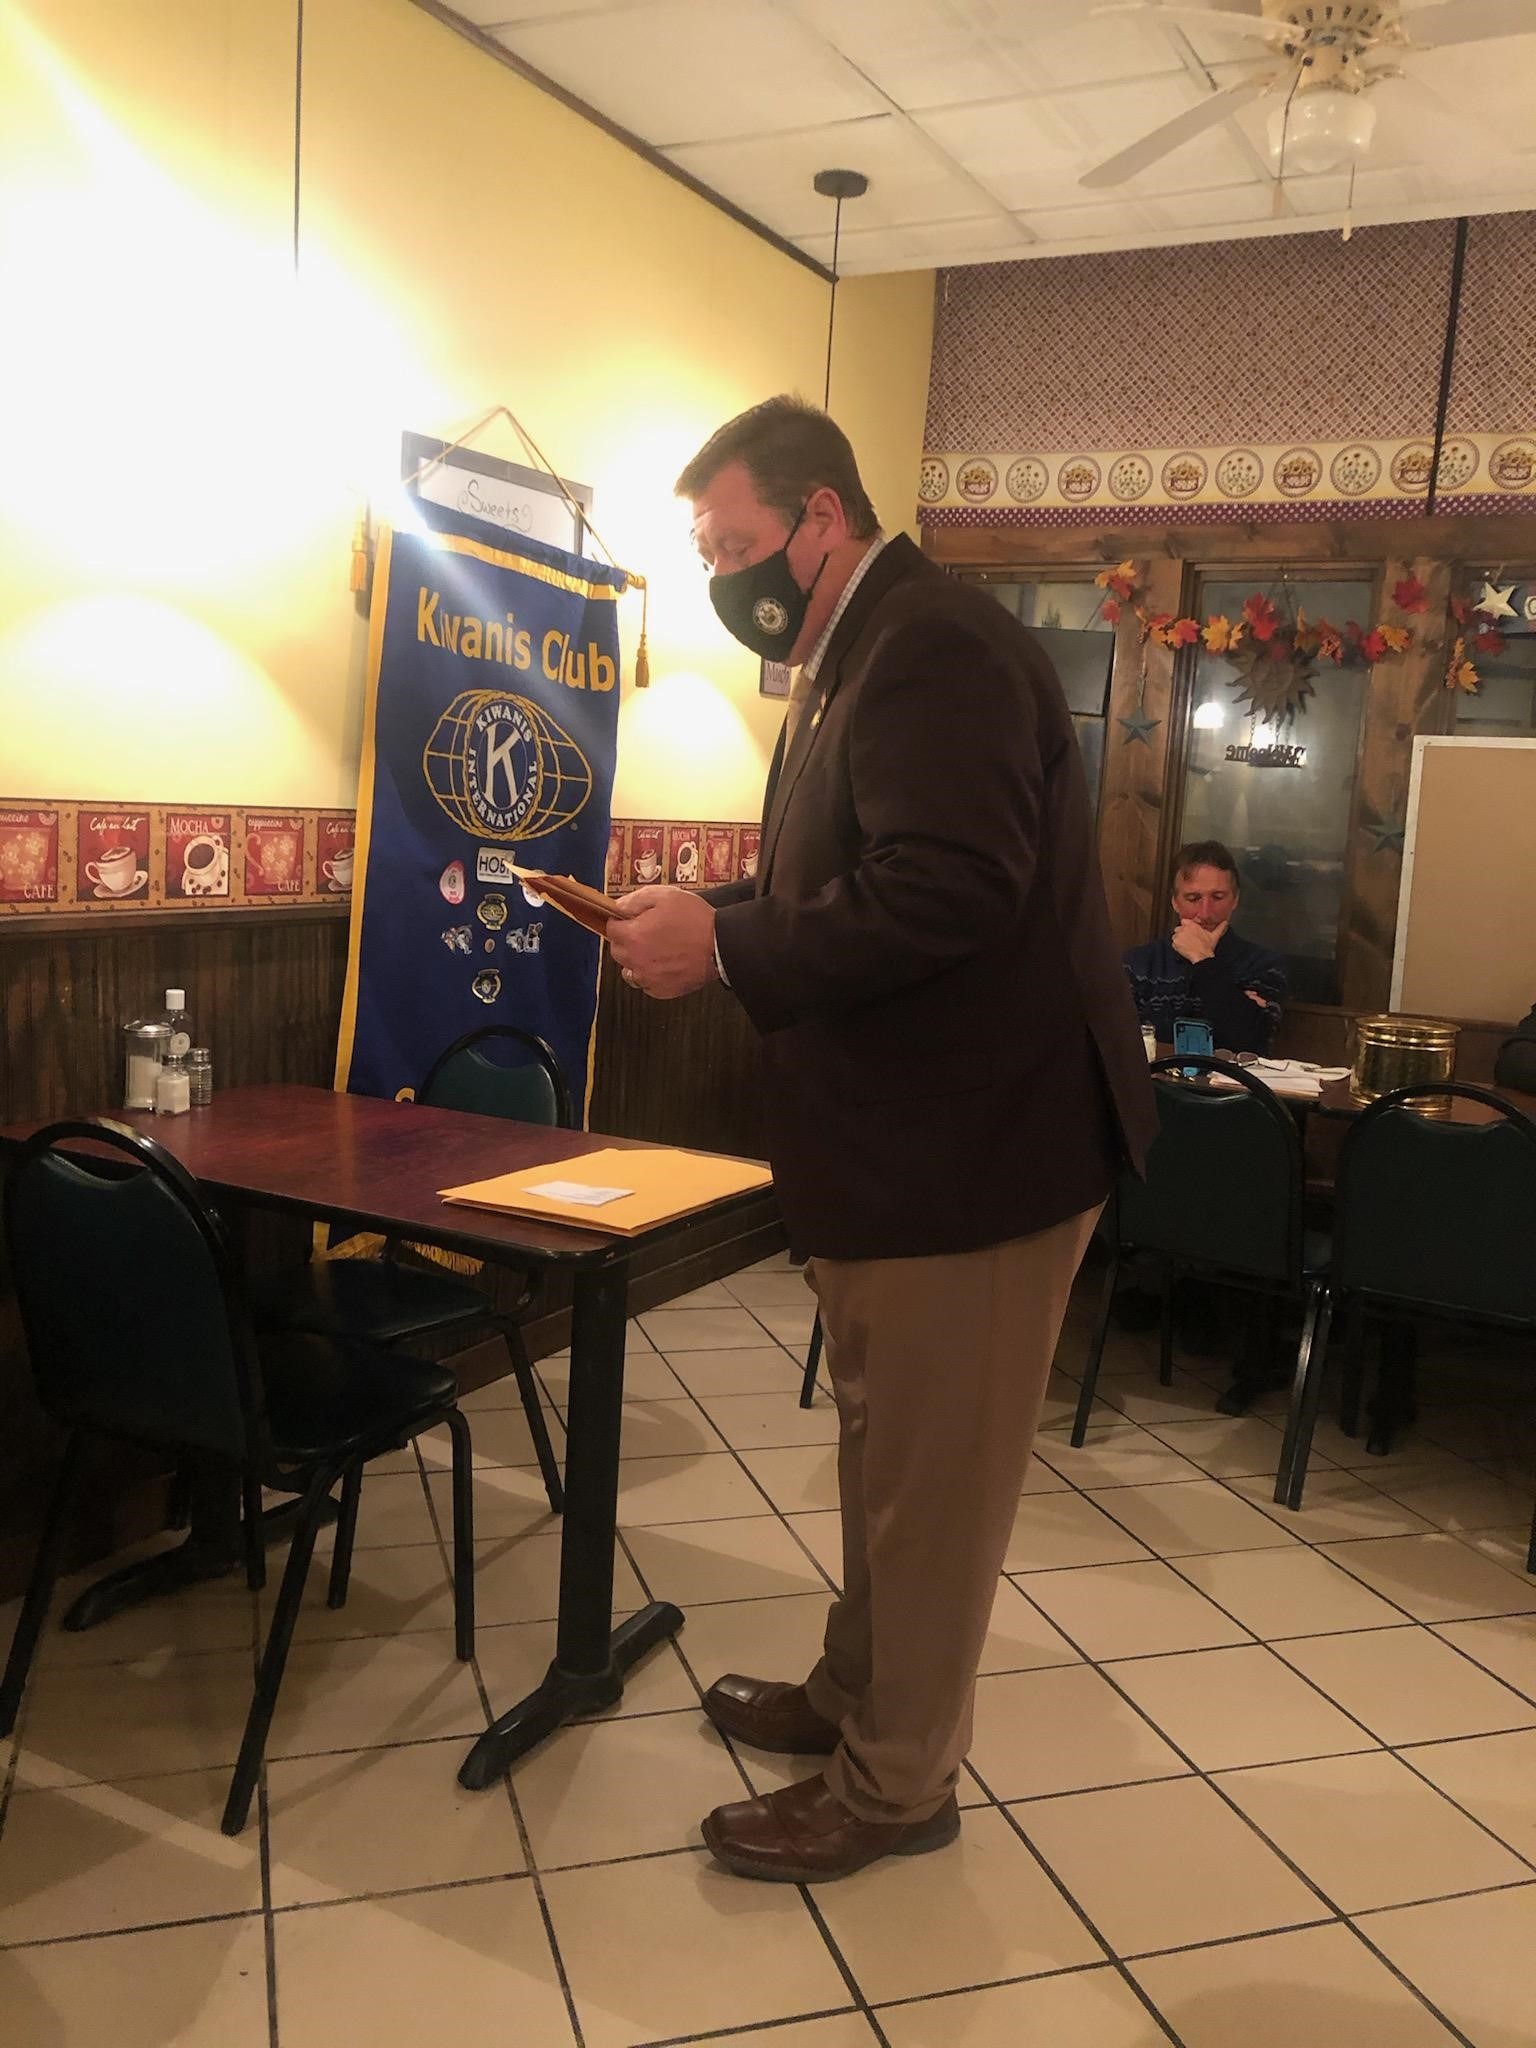 Assemblyman Chris Tague (R,C,I,Ref-Schoharie) at Kiwanis Club meeting in Schoharie, New York.